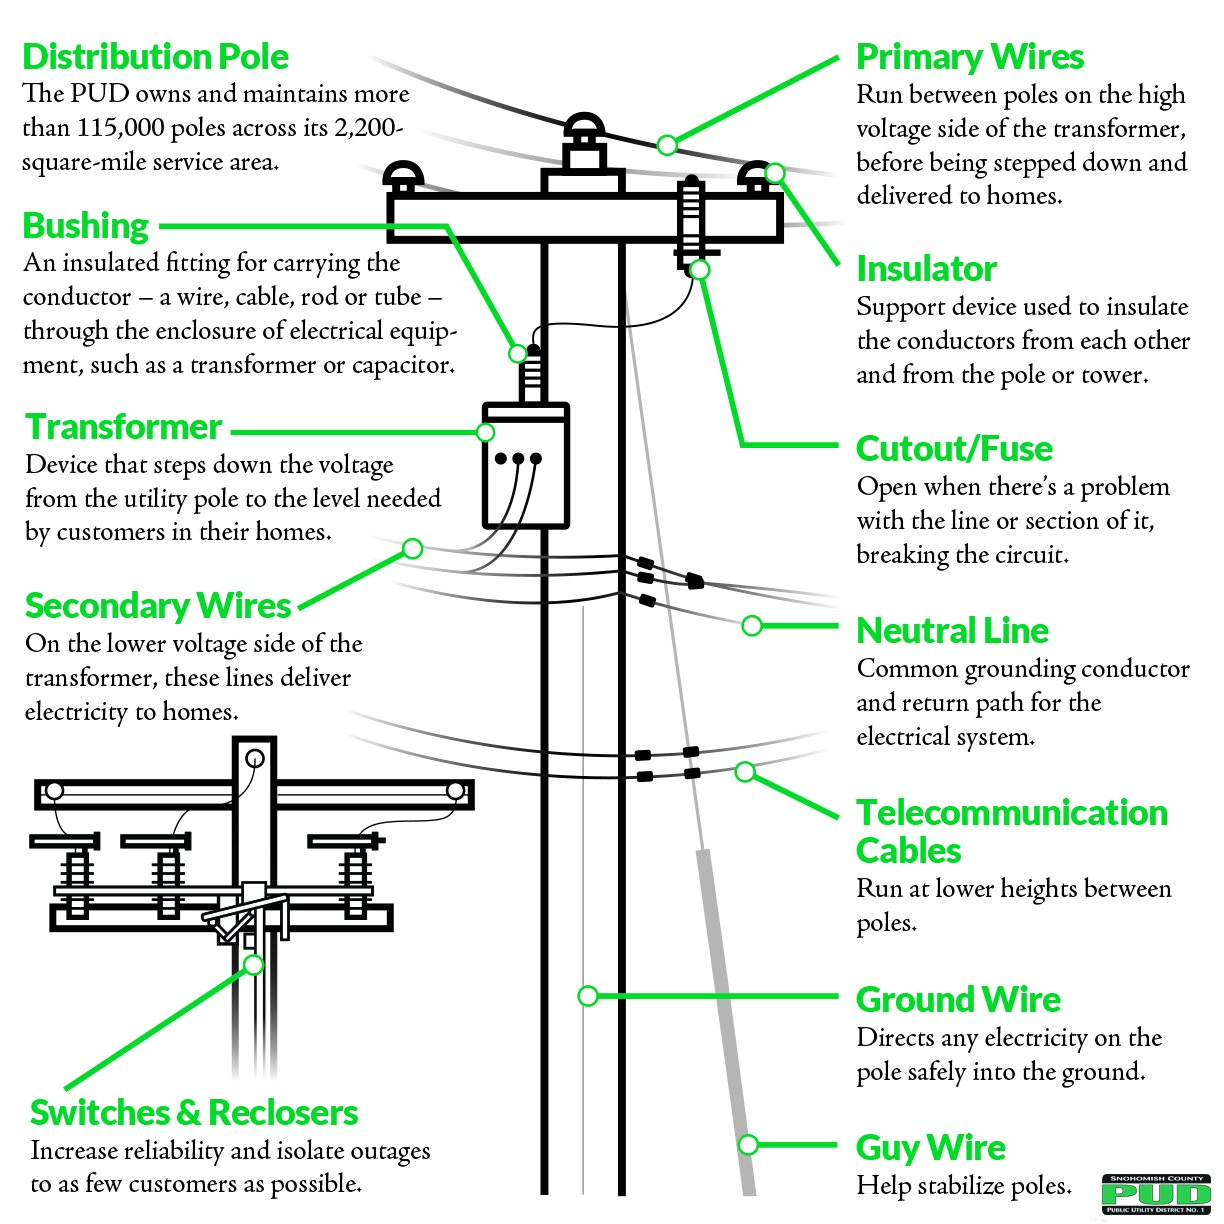 Snohomish County Pud On Twitter Power Poles We Pass By Them Isolation Transformer Diagram Isolated Ground Wiring Everyday Without Thinking Twice But Theres A Lot Happening Up There